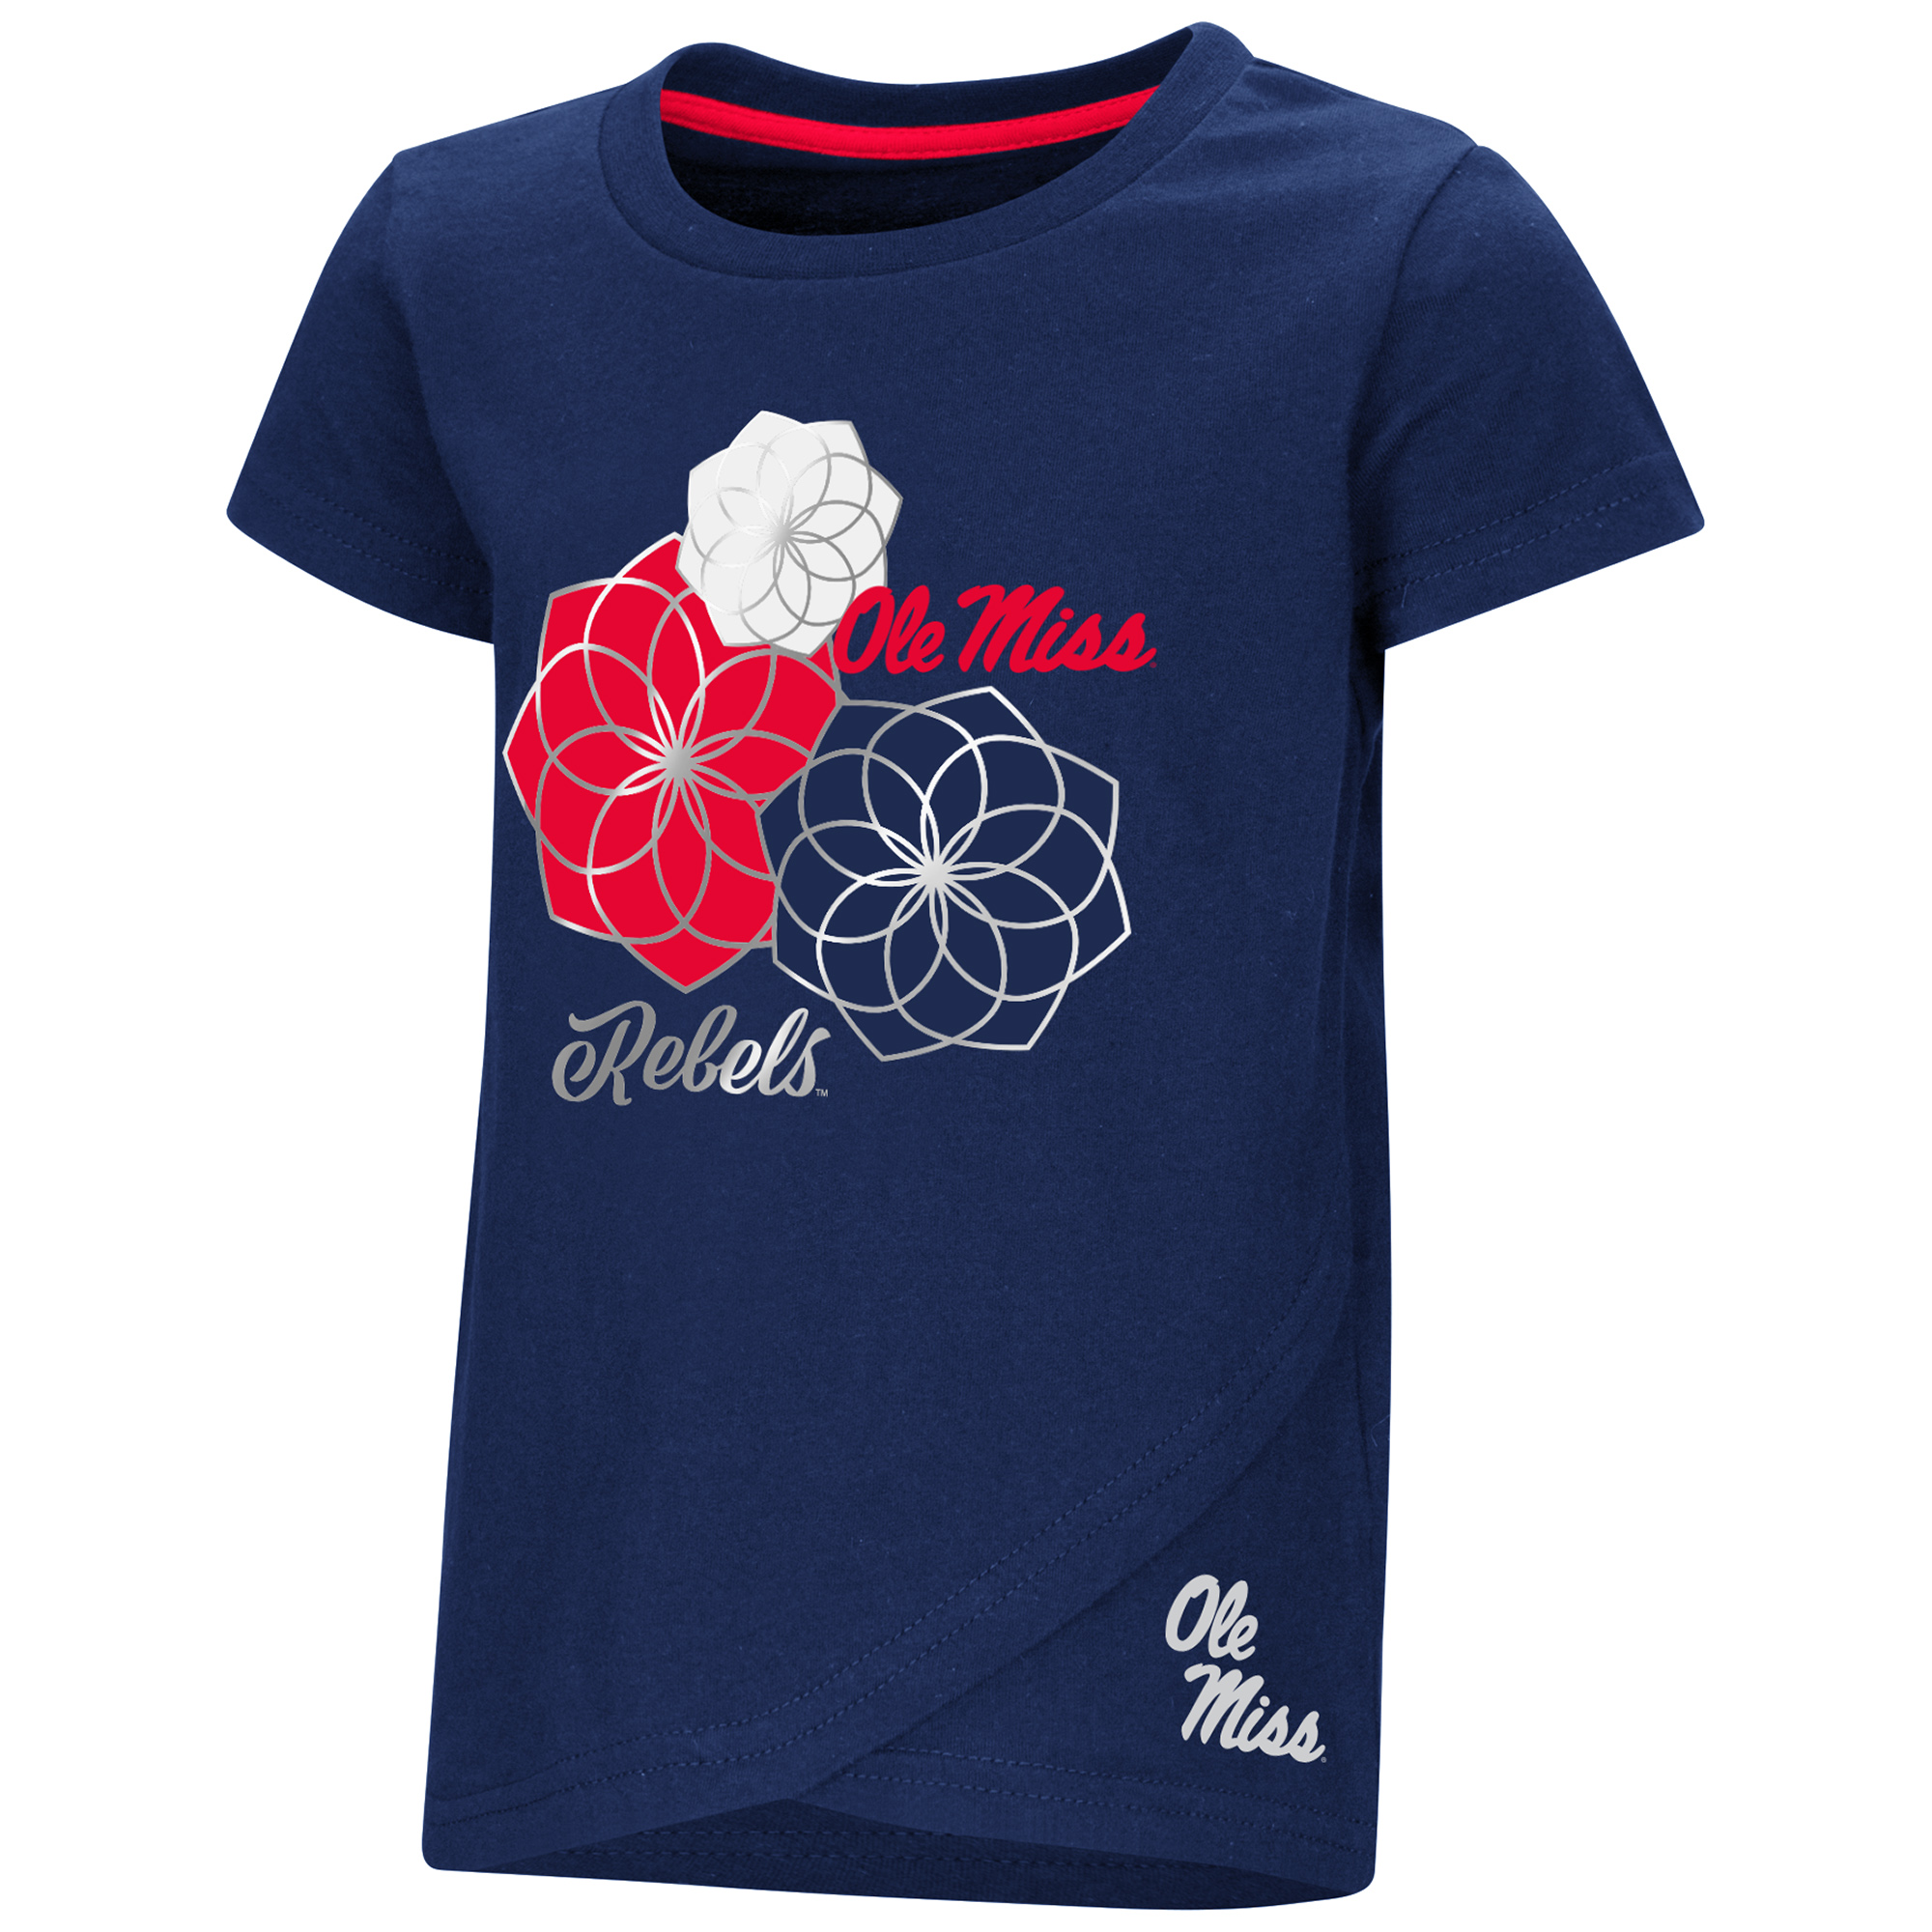 Toddler Girls Whoo! Whoo! Flower Tee